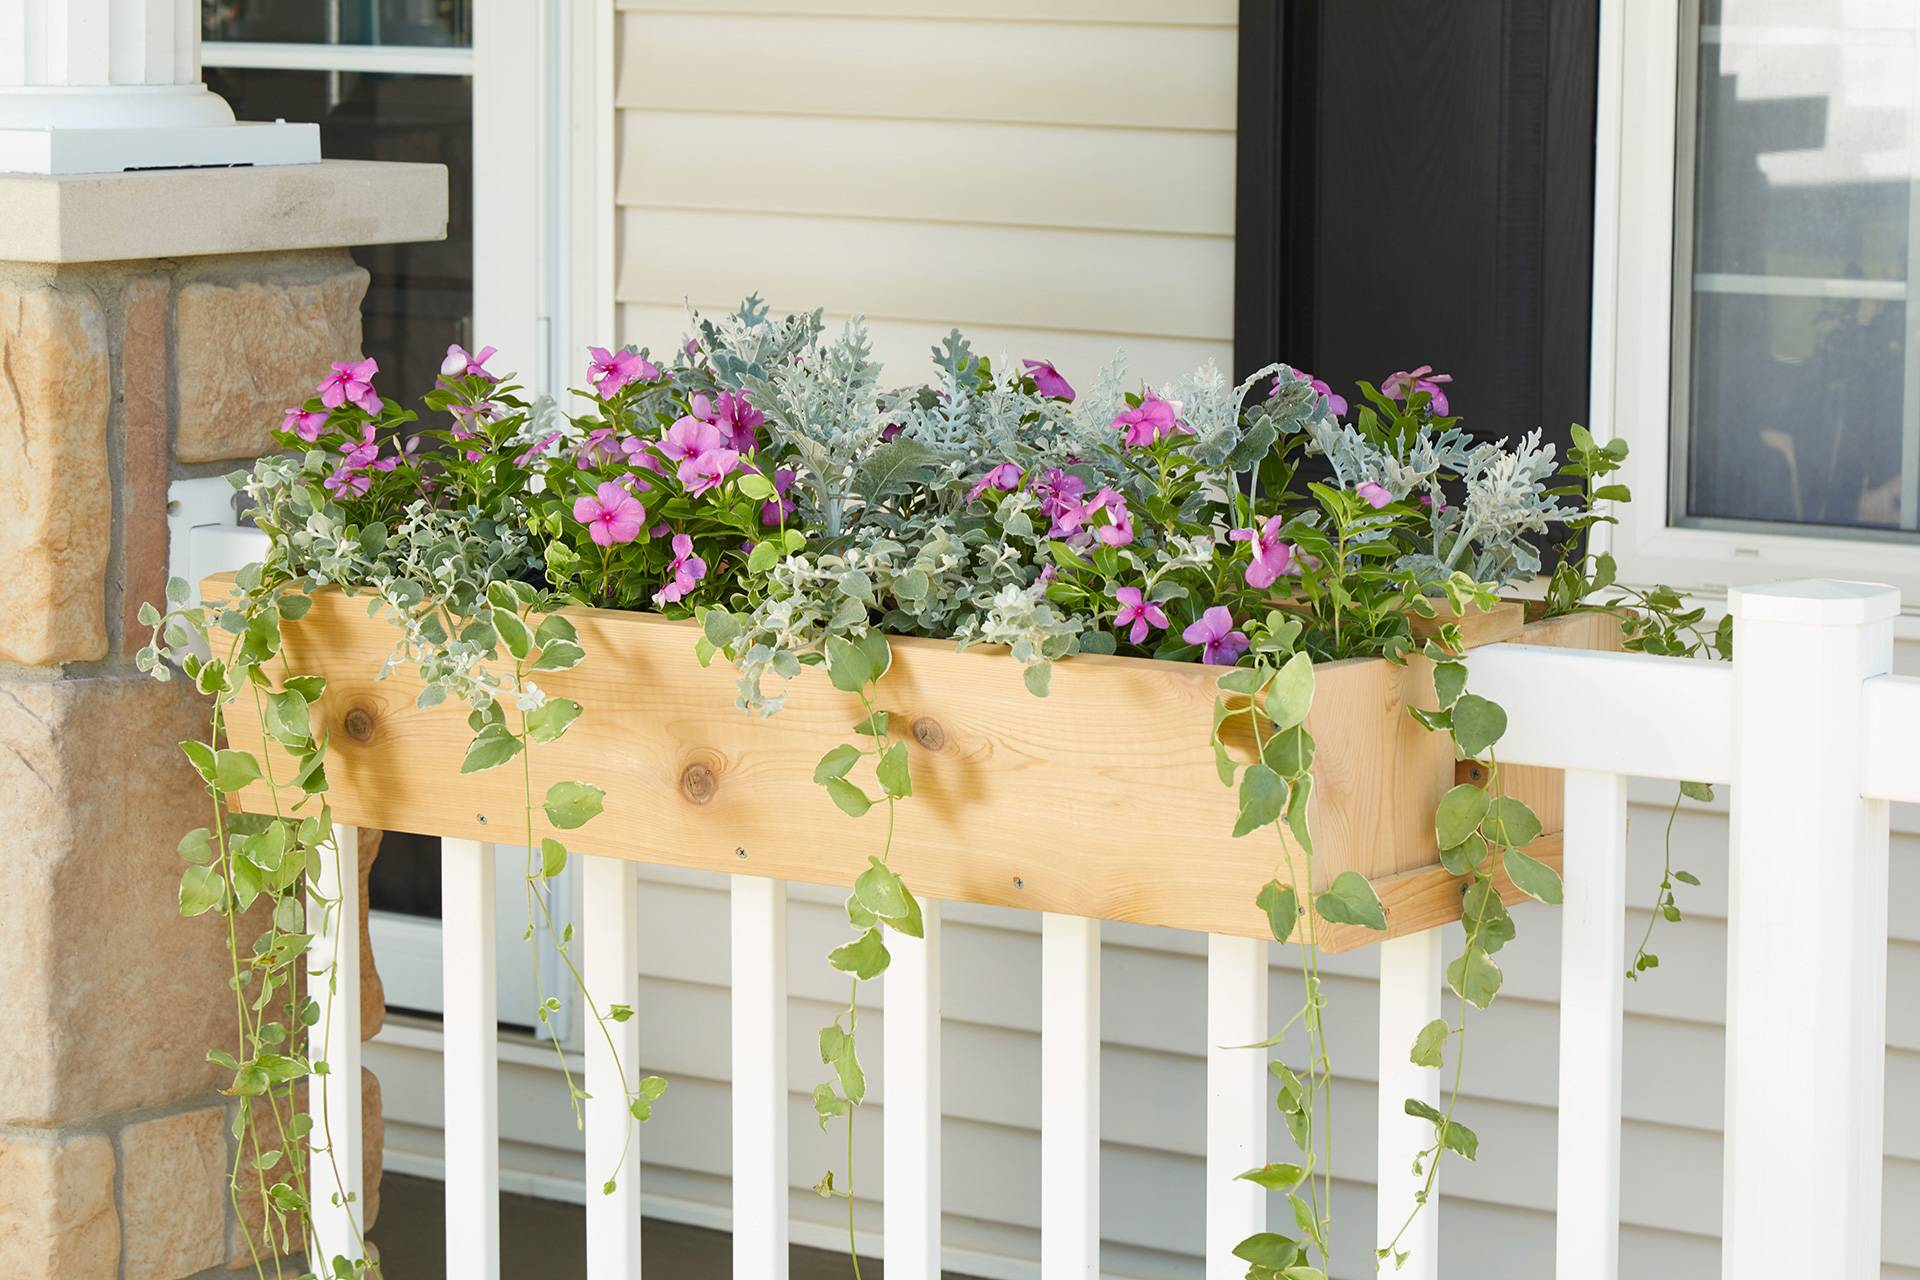 Planter in the railing